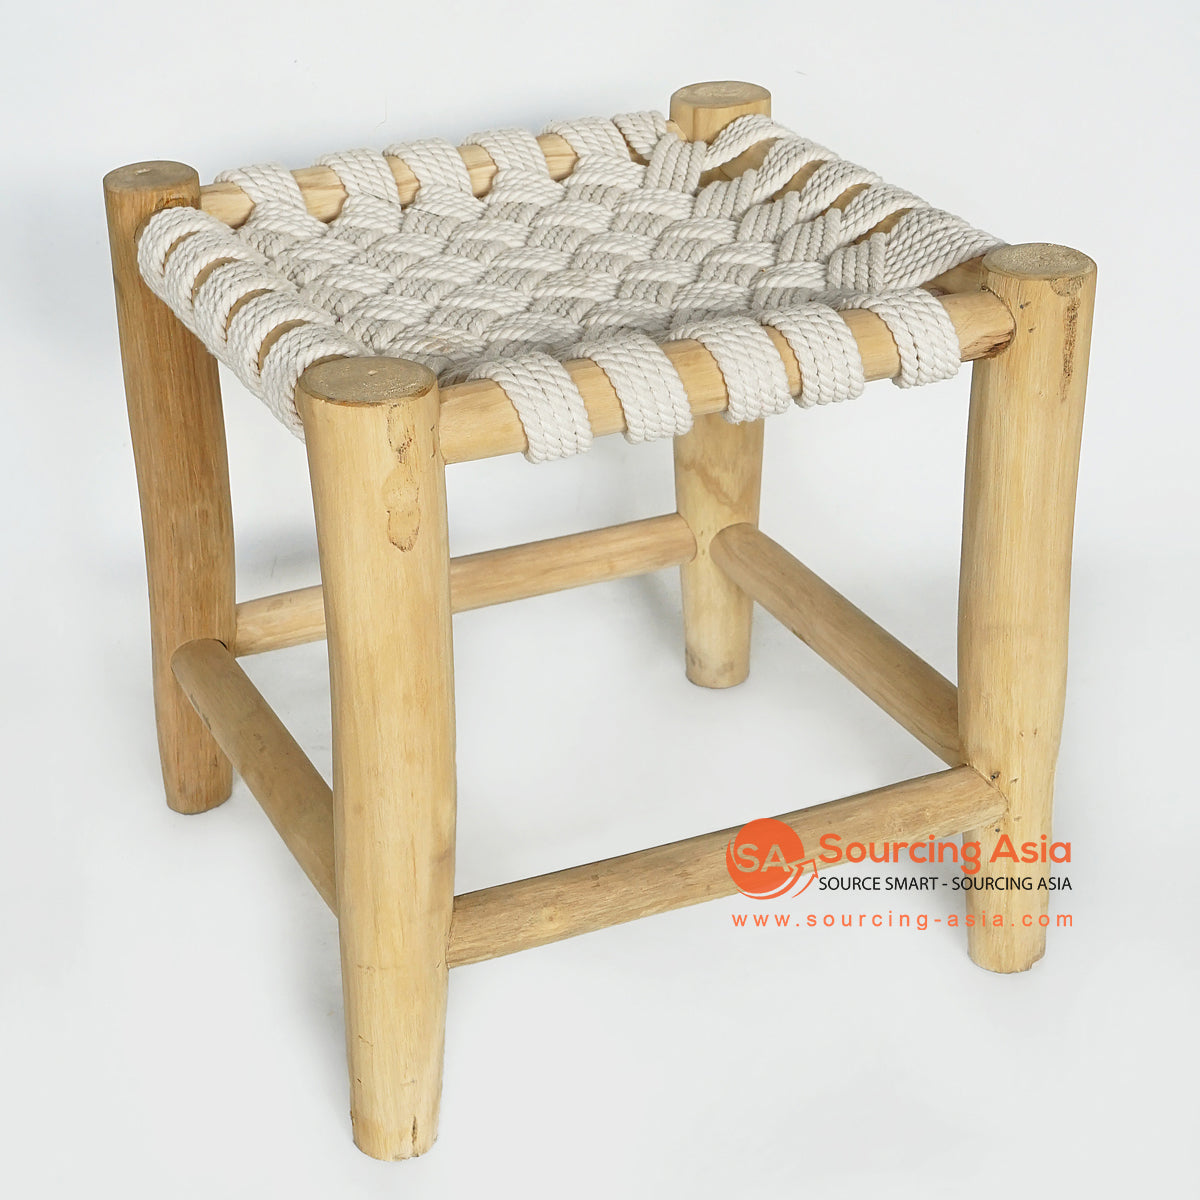 MRC162 NATURAL WOODEN SQUARE STOOL WITH WHITE ROPE SEAT